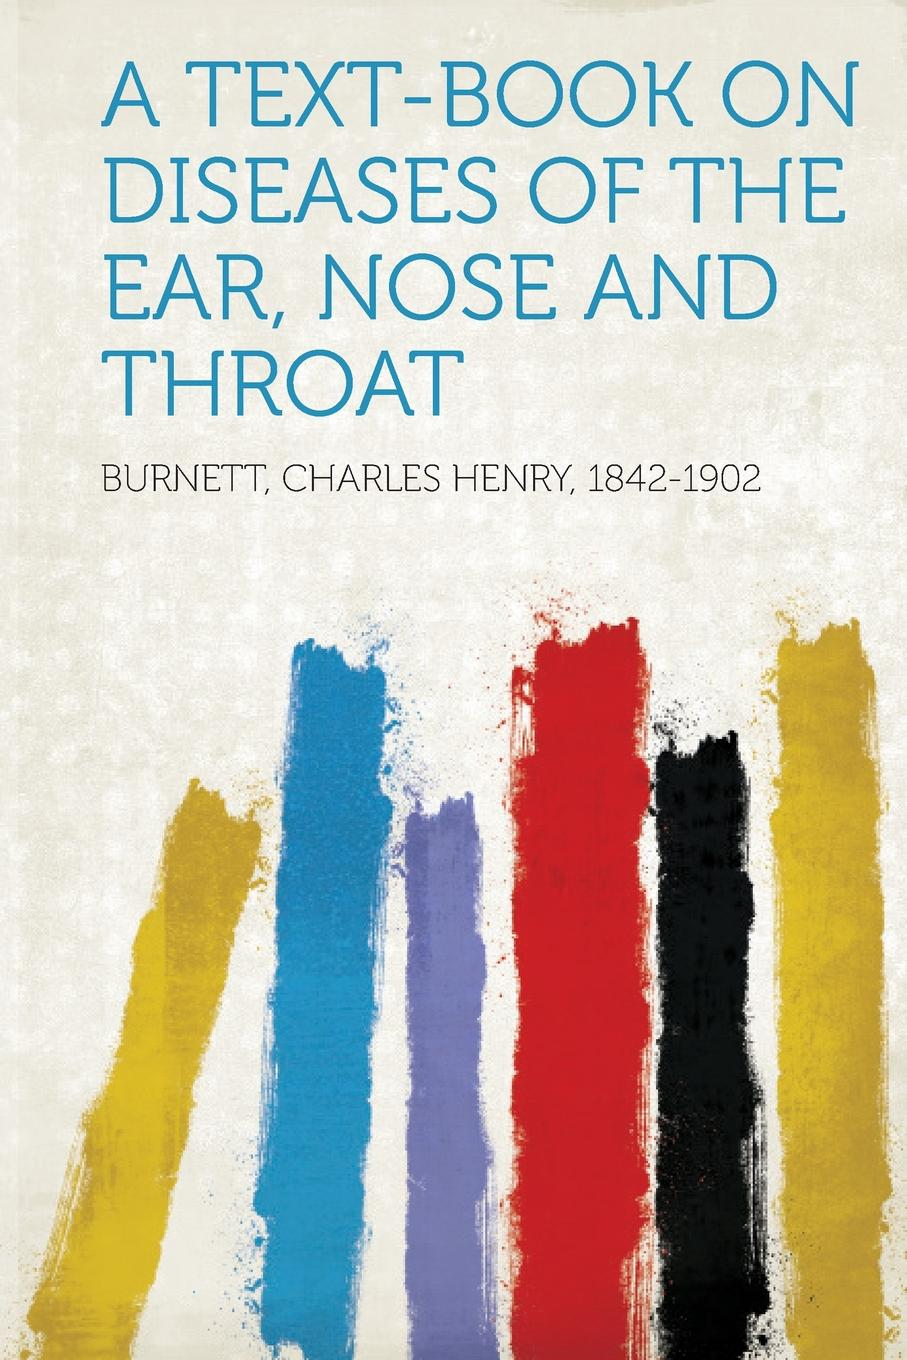 Фото - Burnett Charles Henry 1842-1902 A Text-Book on Diseases of the Ear, Nose and Throat ludman harold s abc of ear nose and throat